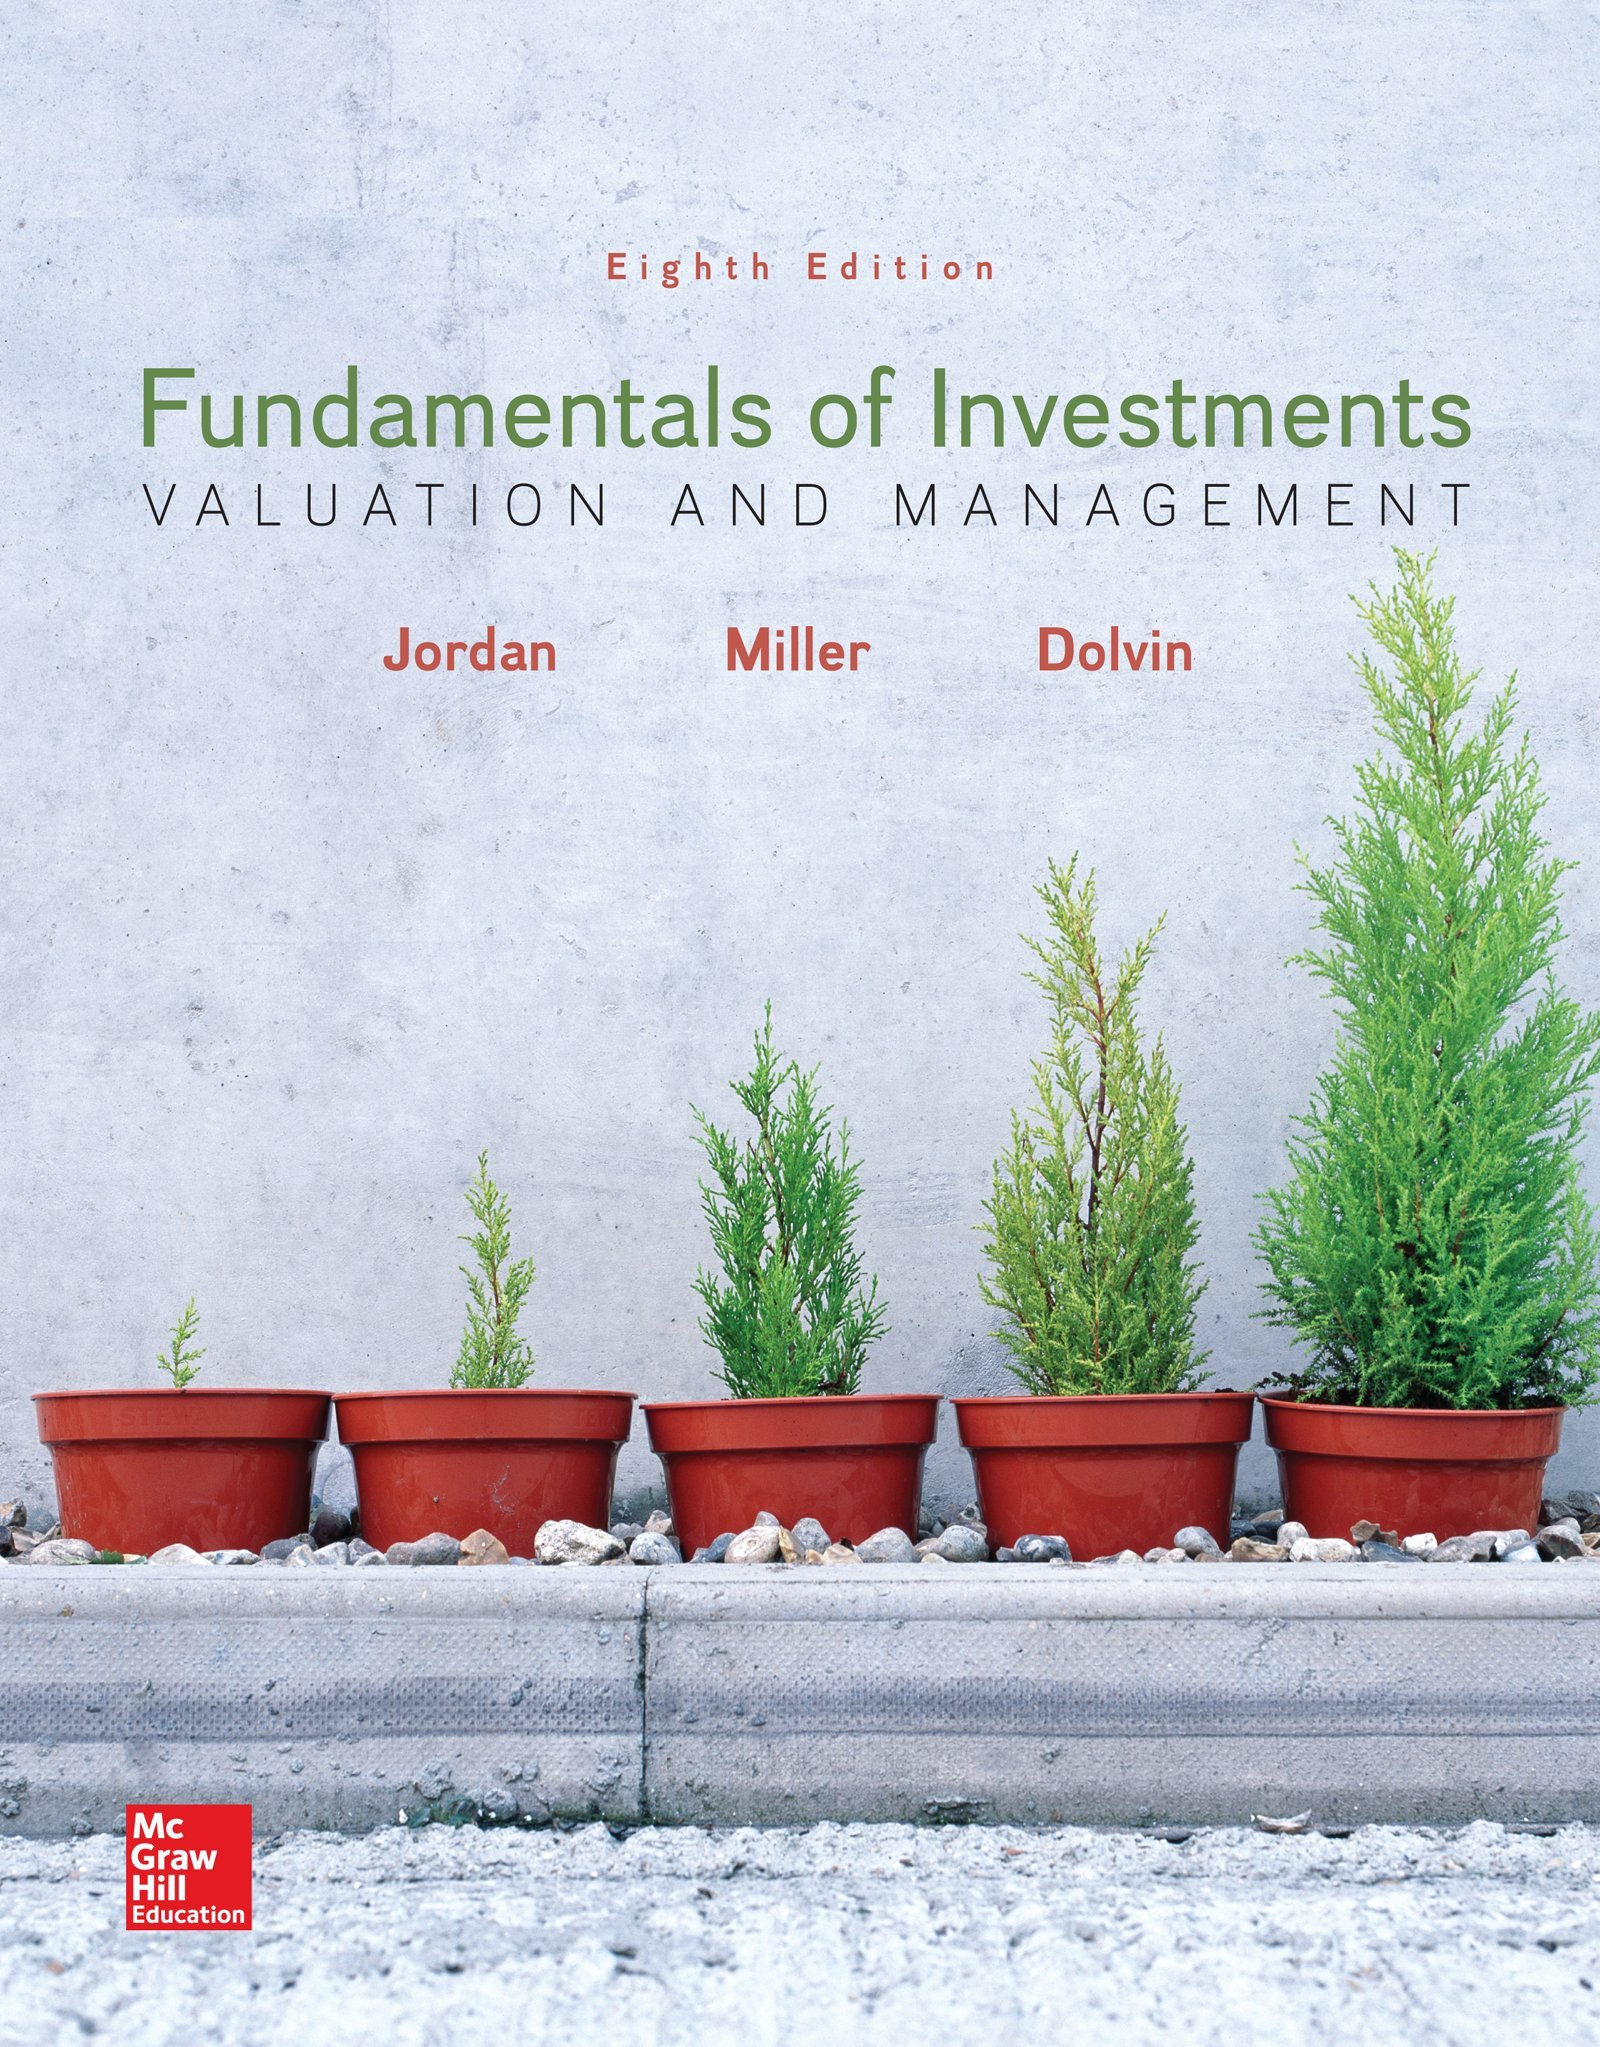 Fundamentals of Investments: Valuation and Management by McGraw-Hill Education